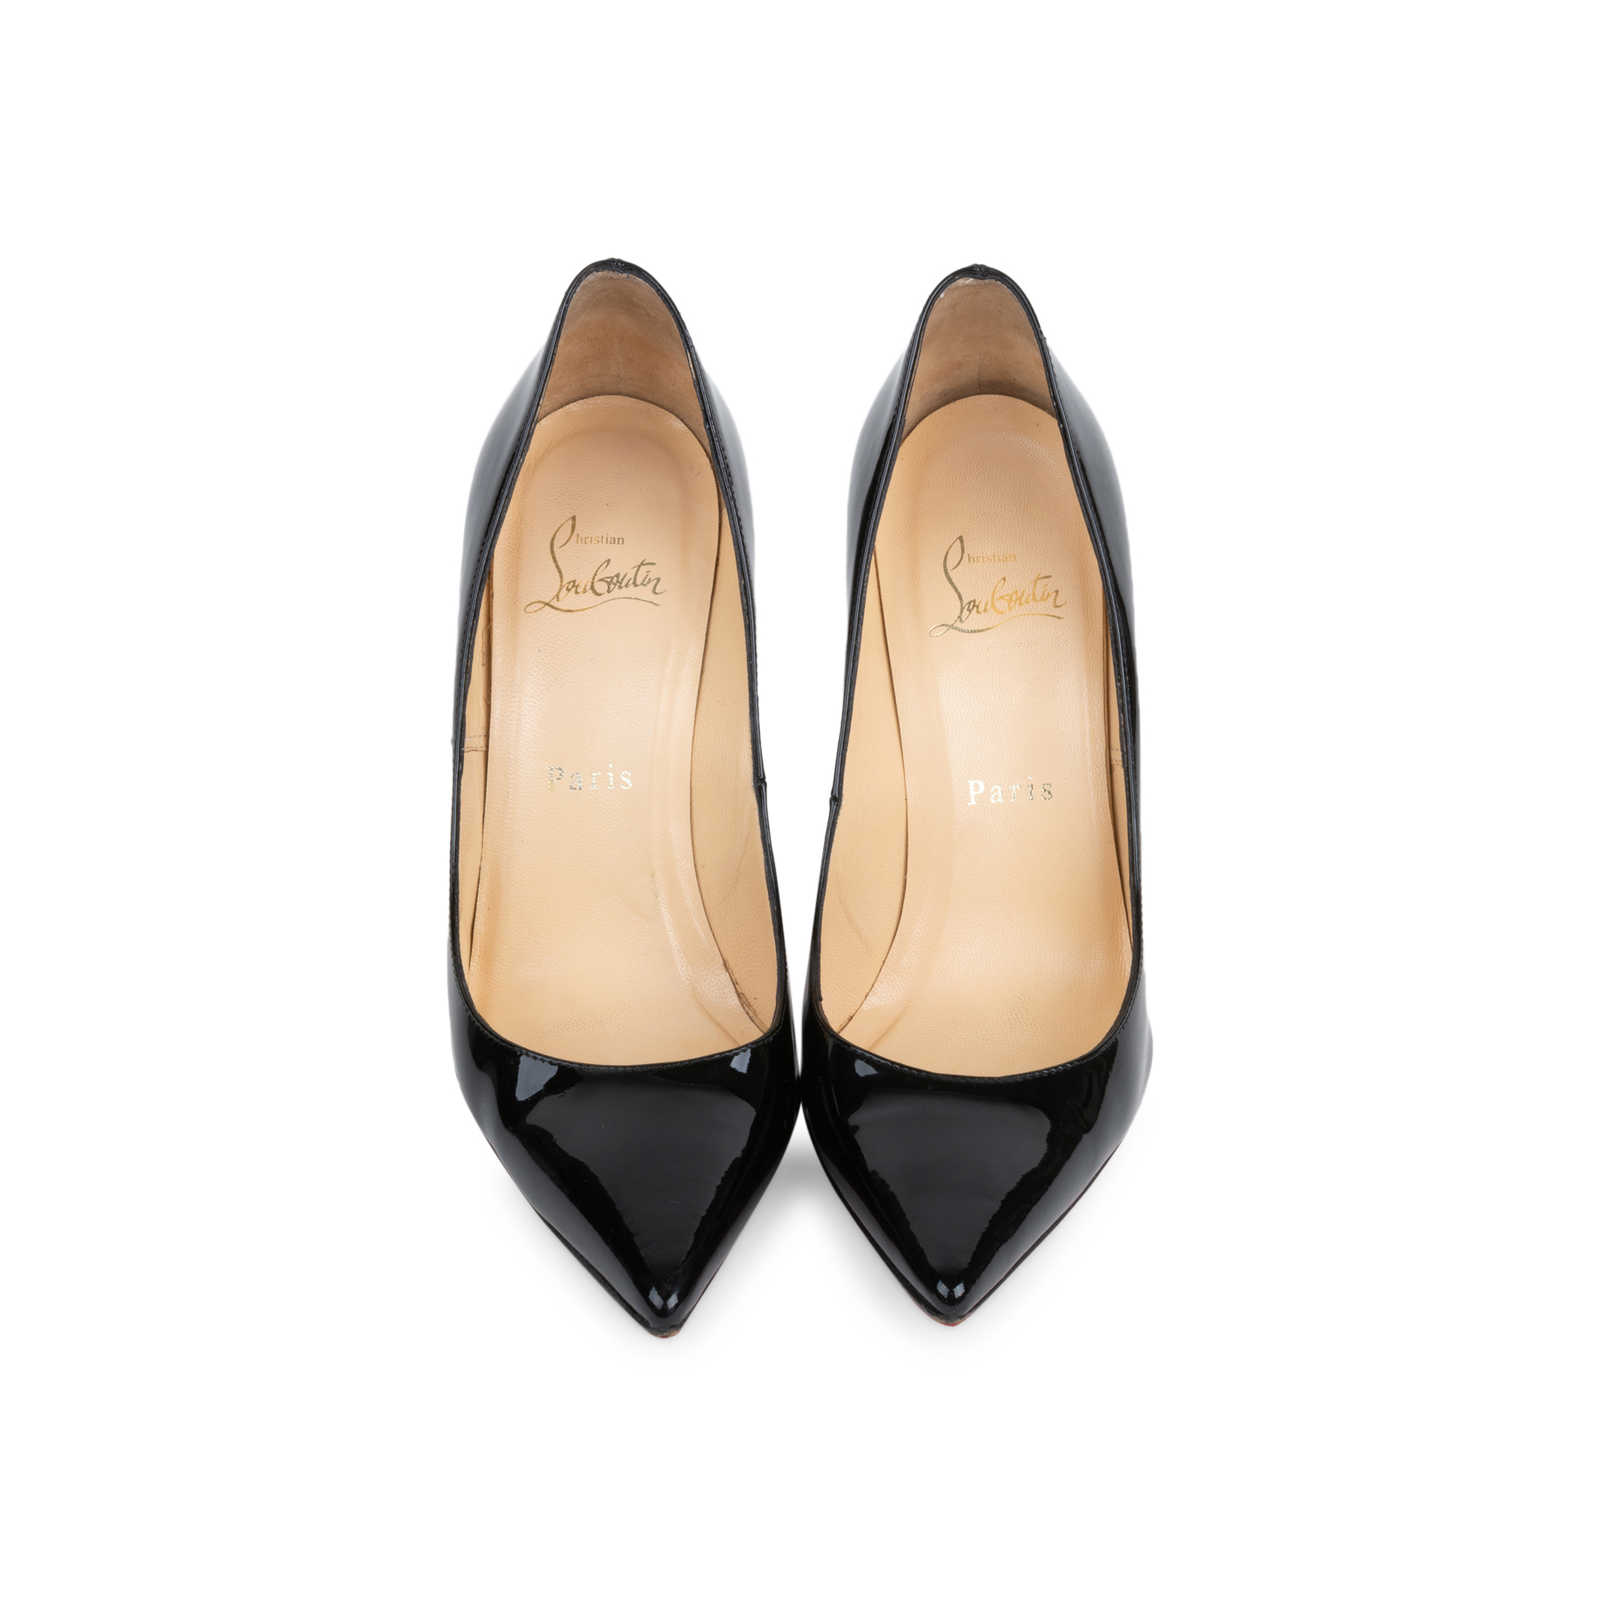 official photos 356fa 98fde Authentic Second Hand Christian Louboutin Decollete 554 100 ...